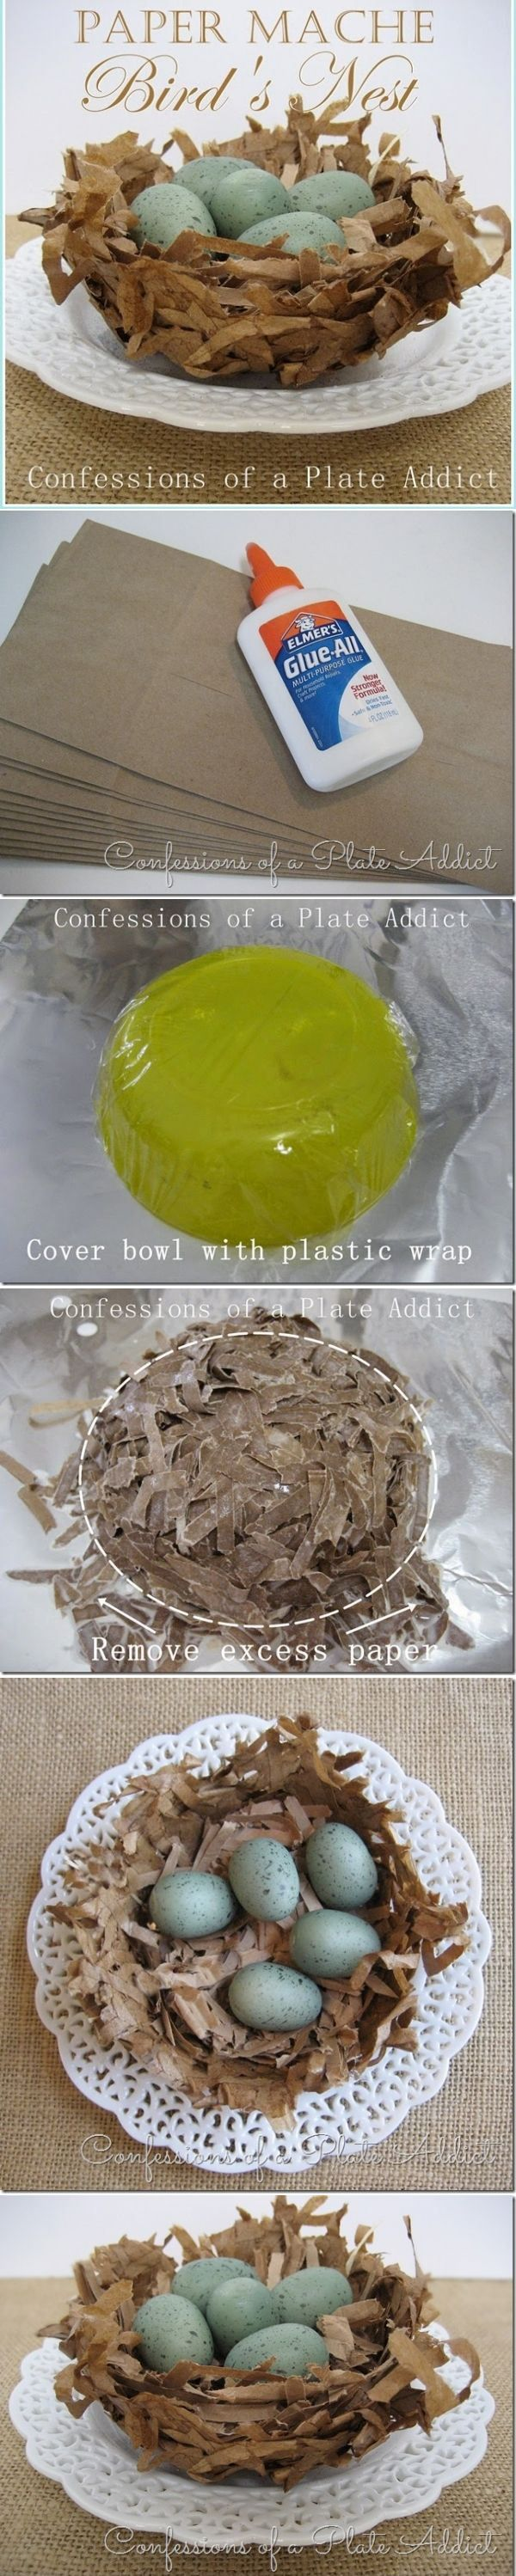 DIY Paper Mache Bird's Nests